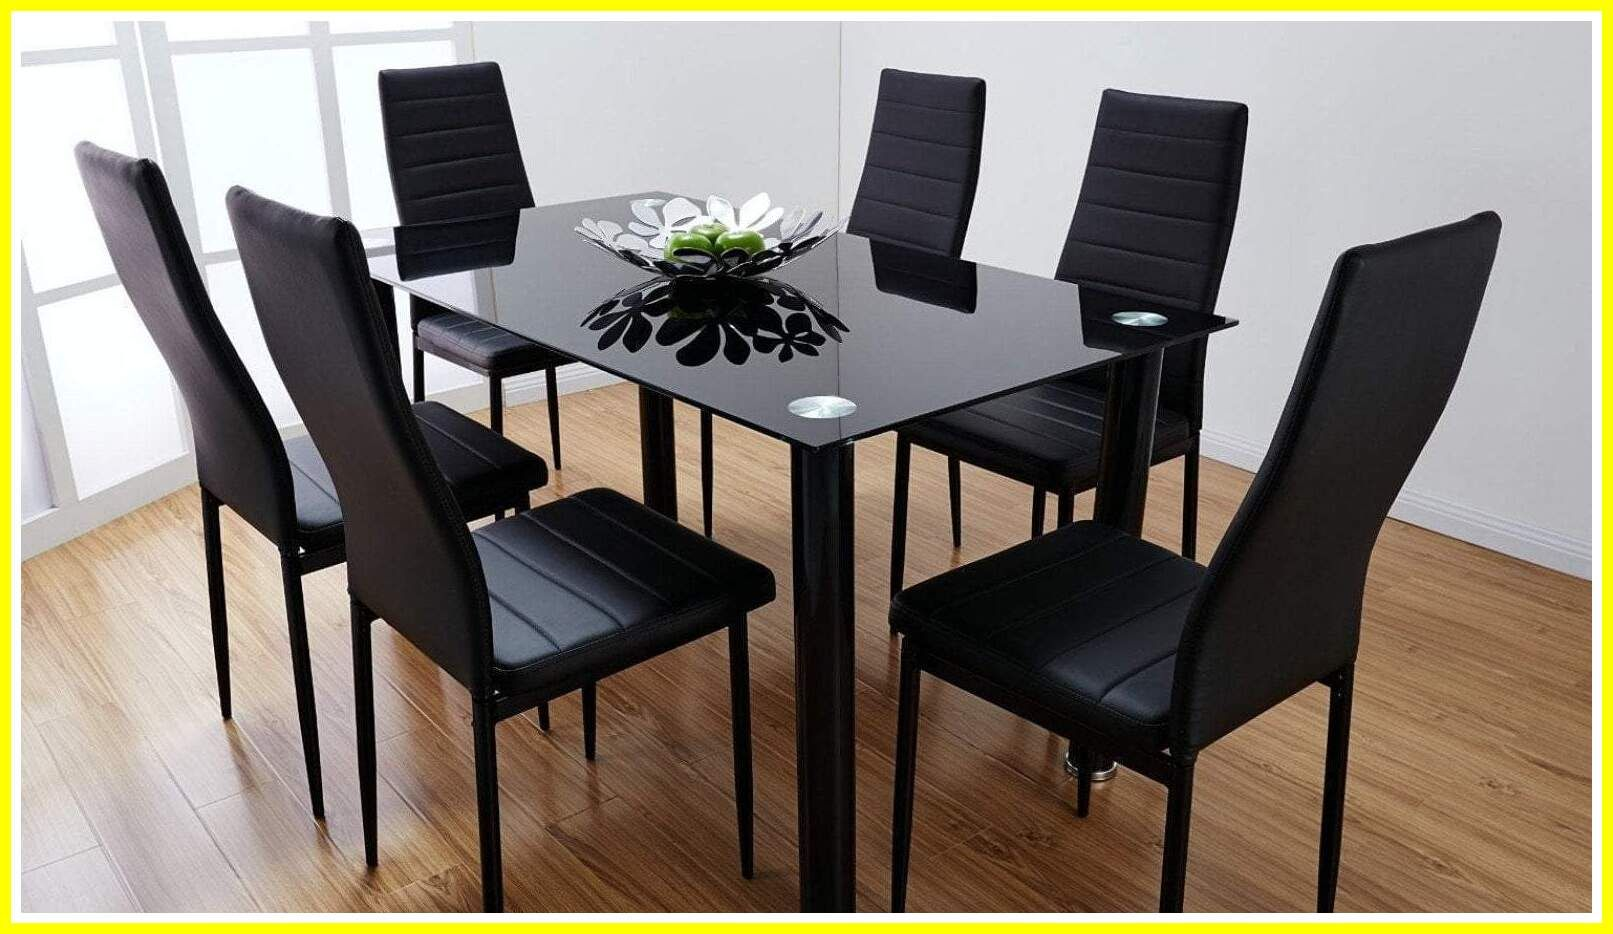 103 Reference Of Furniture Chair Price In Nigeria Dining Chair Upholstery Furniture Chair Price